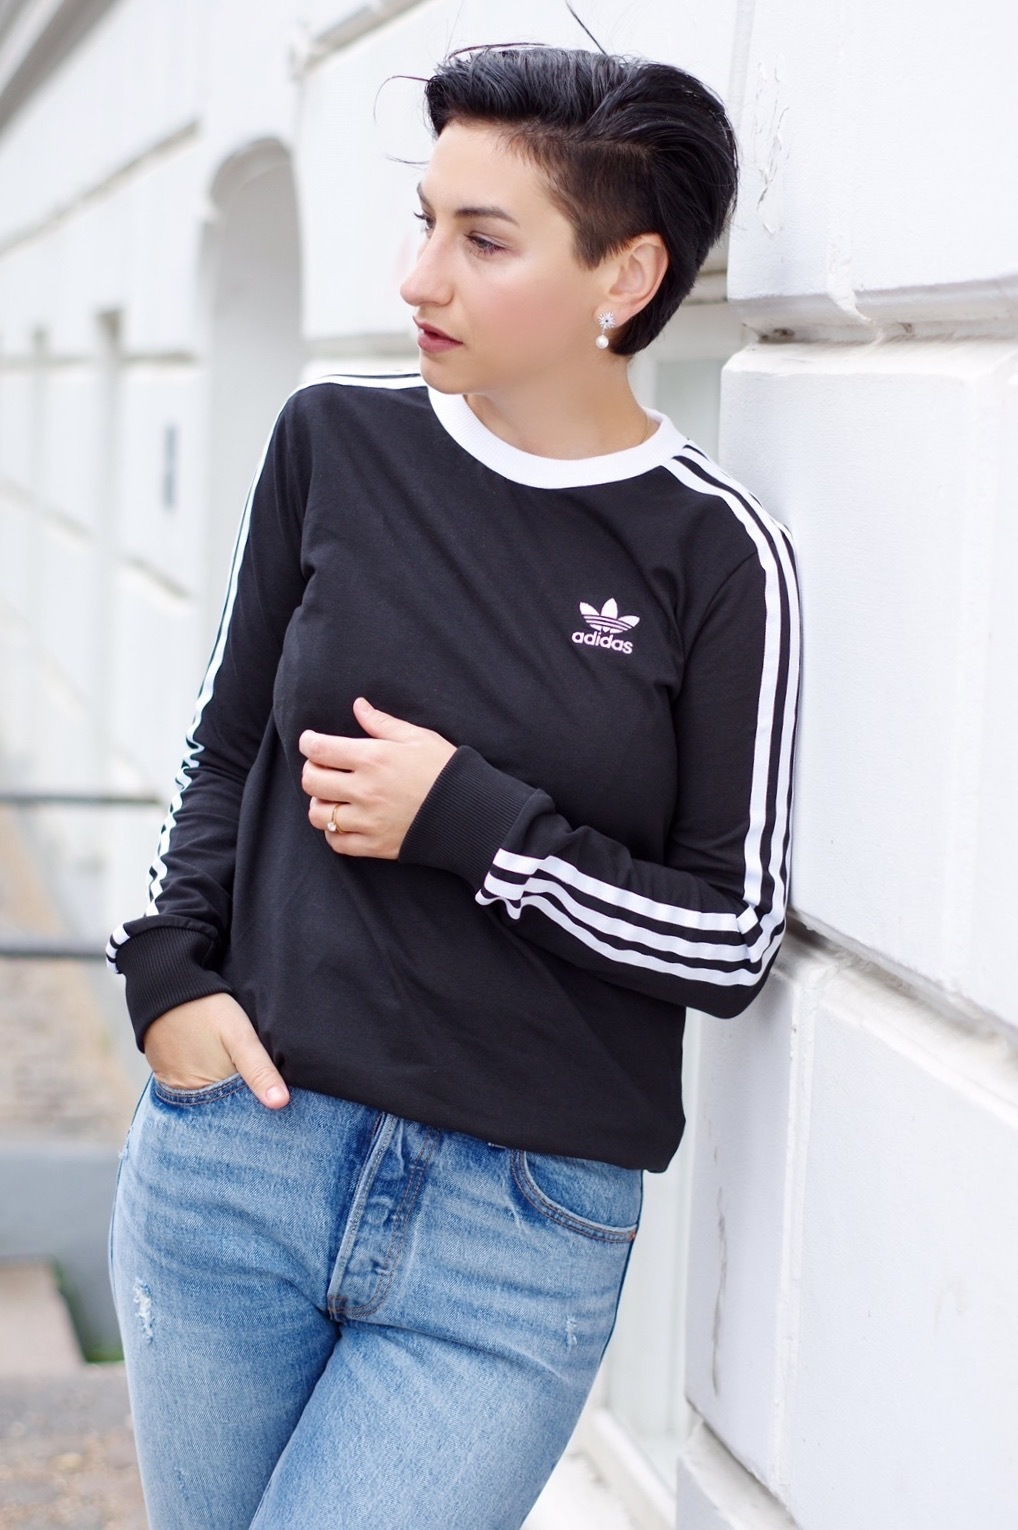 Adidas outfit, casual chic jeans